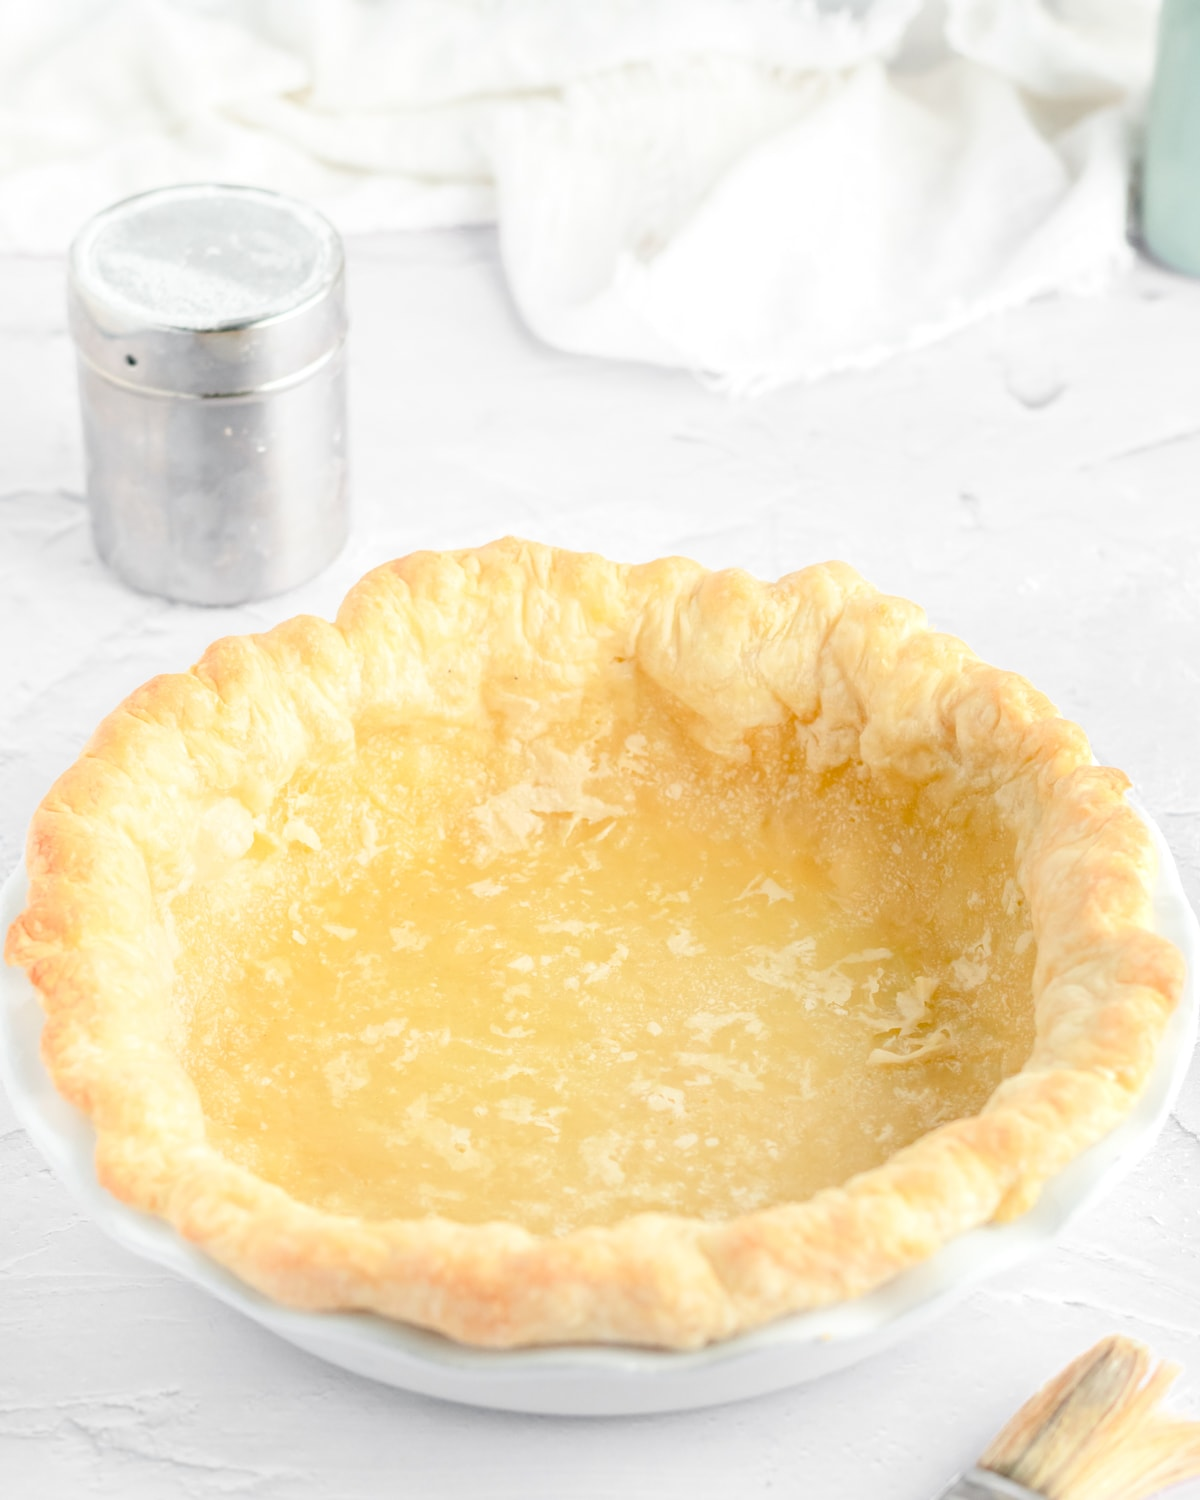 a baked pie crust